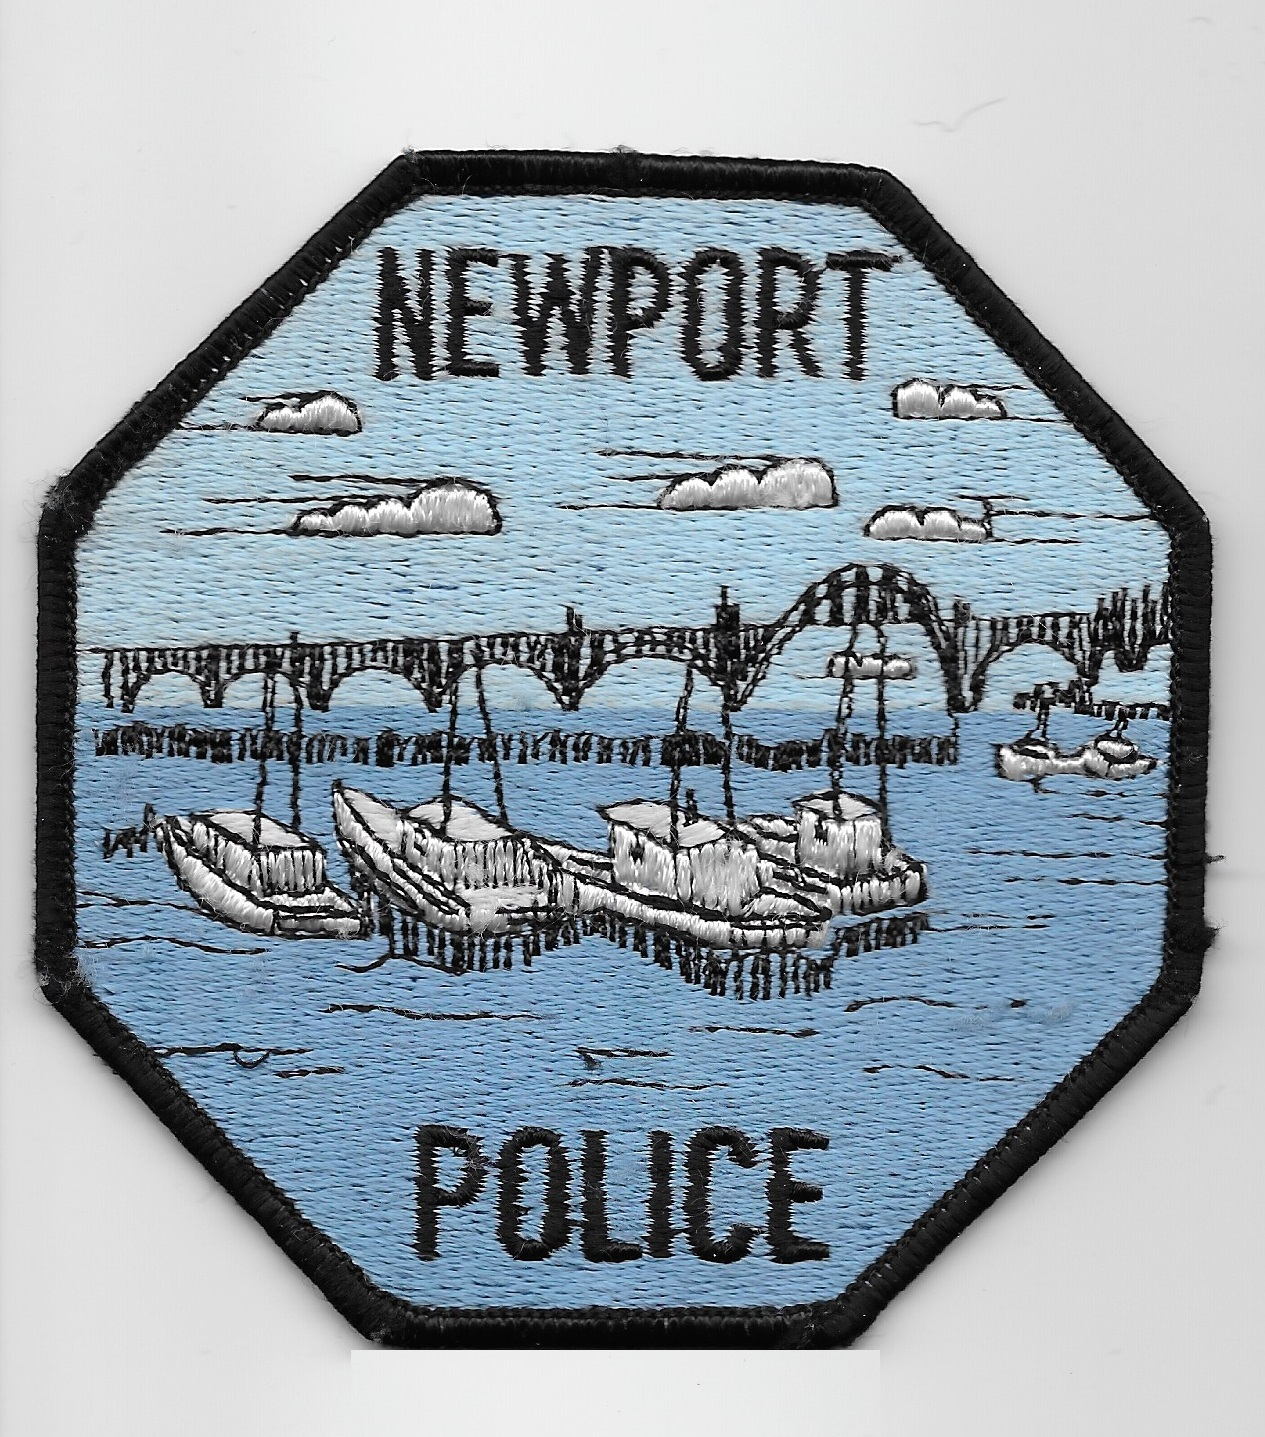 Newport Police OR